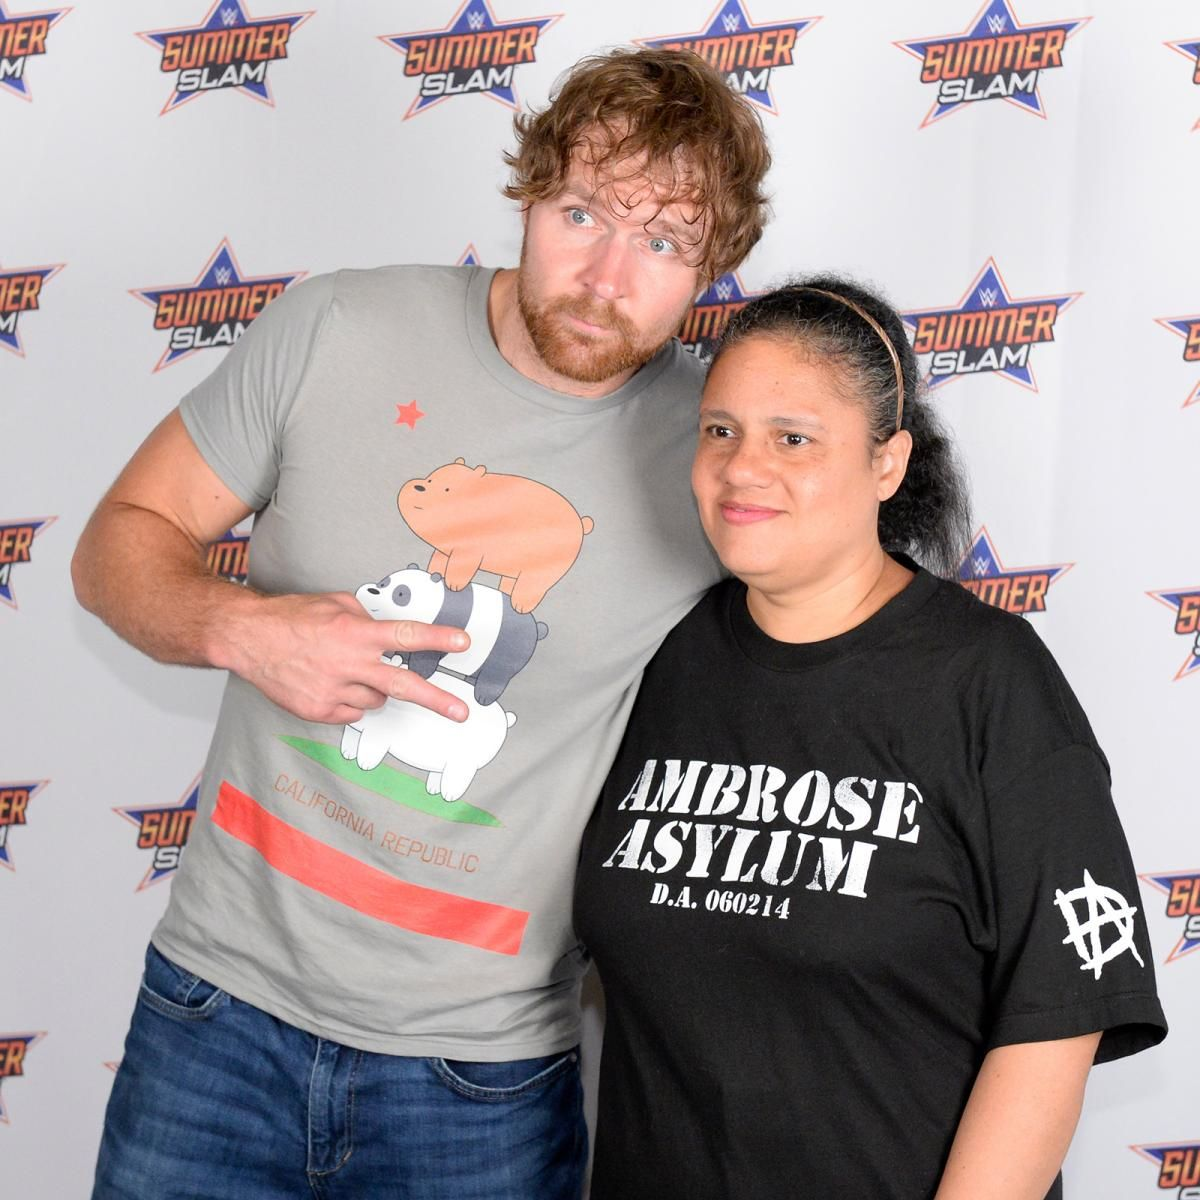 Aj styles and dean ambrose engage the fans in a special summerslam aj styles and dean ambrose engage the fans in a special summerslam meet greet kristyandbryce Image collections